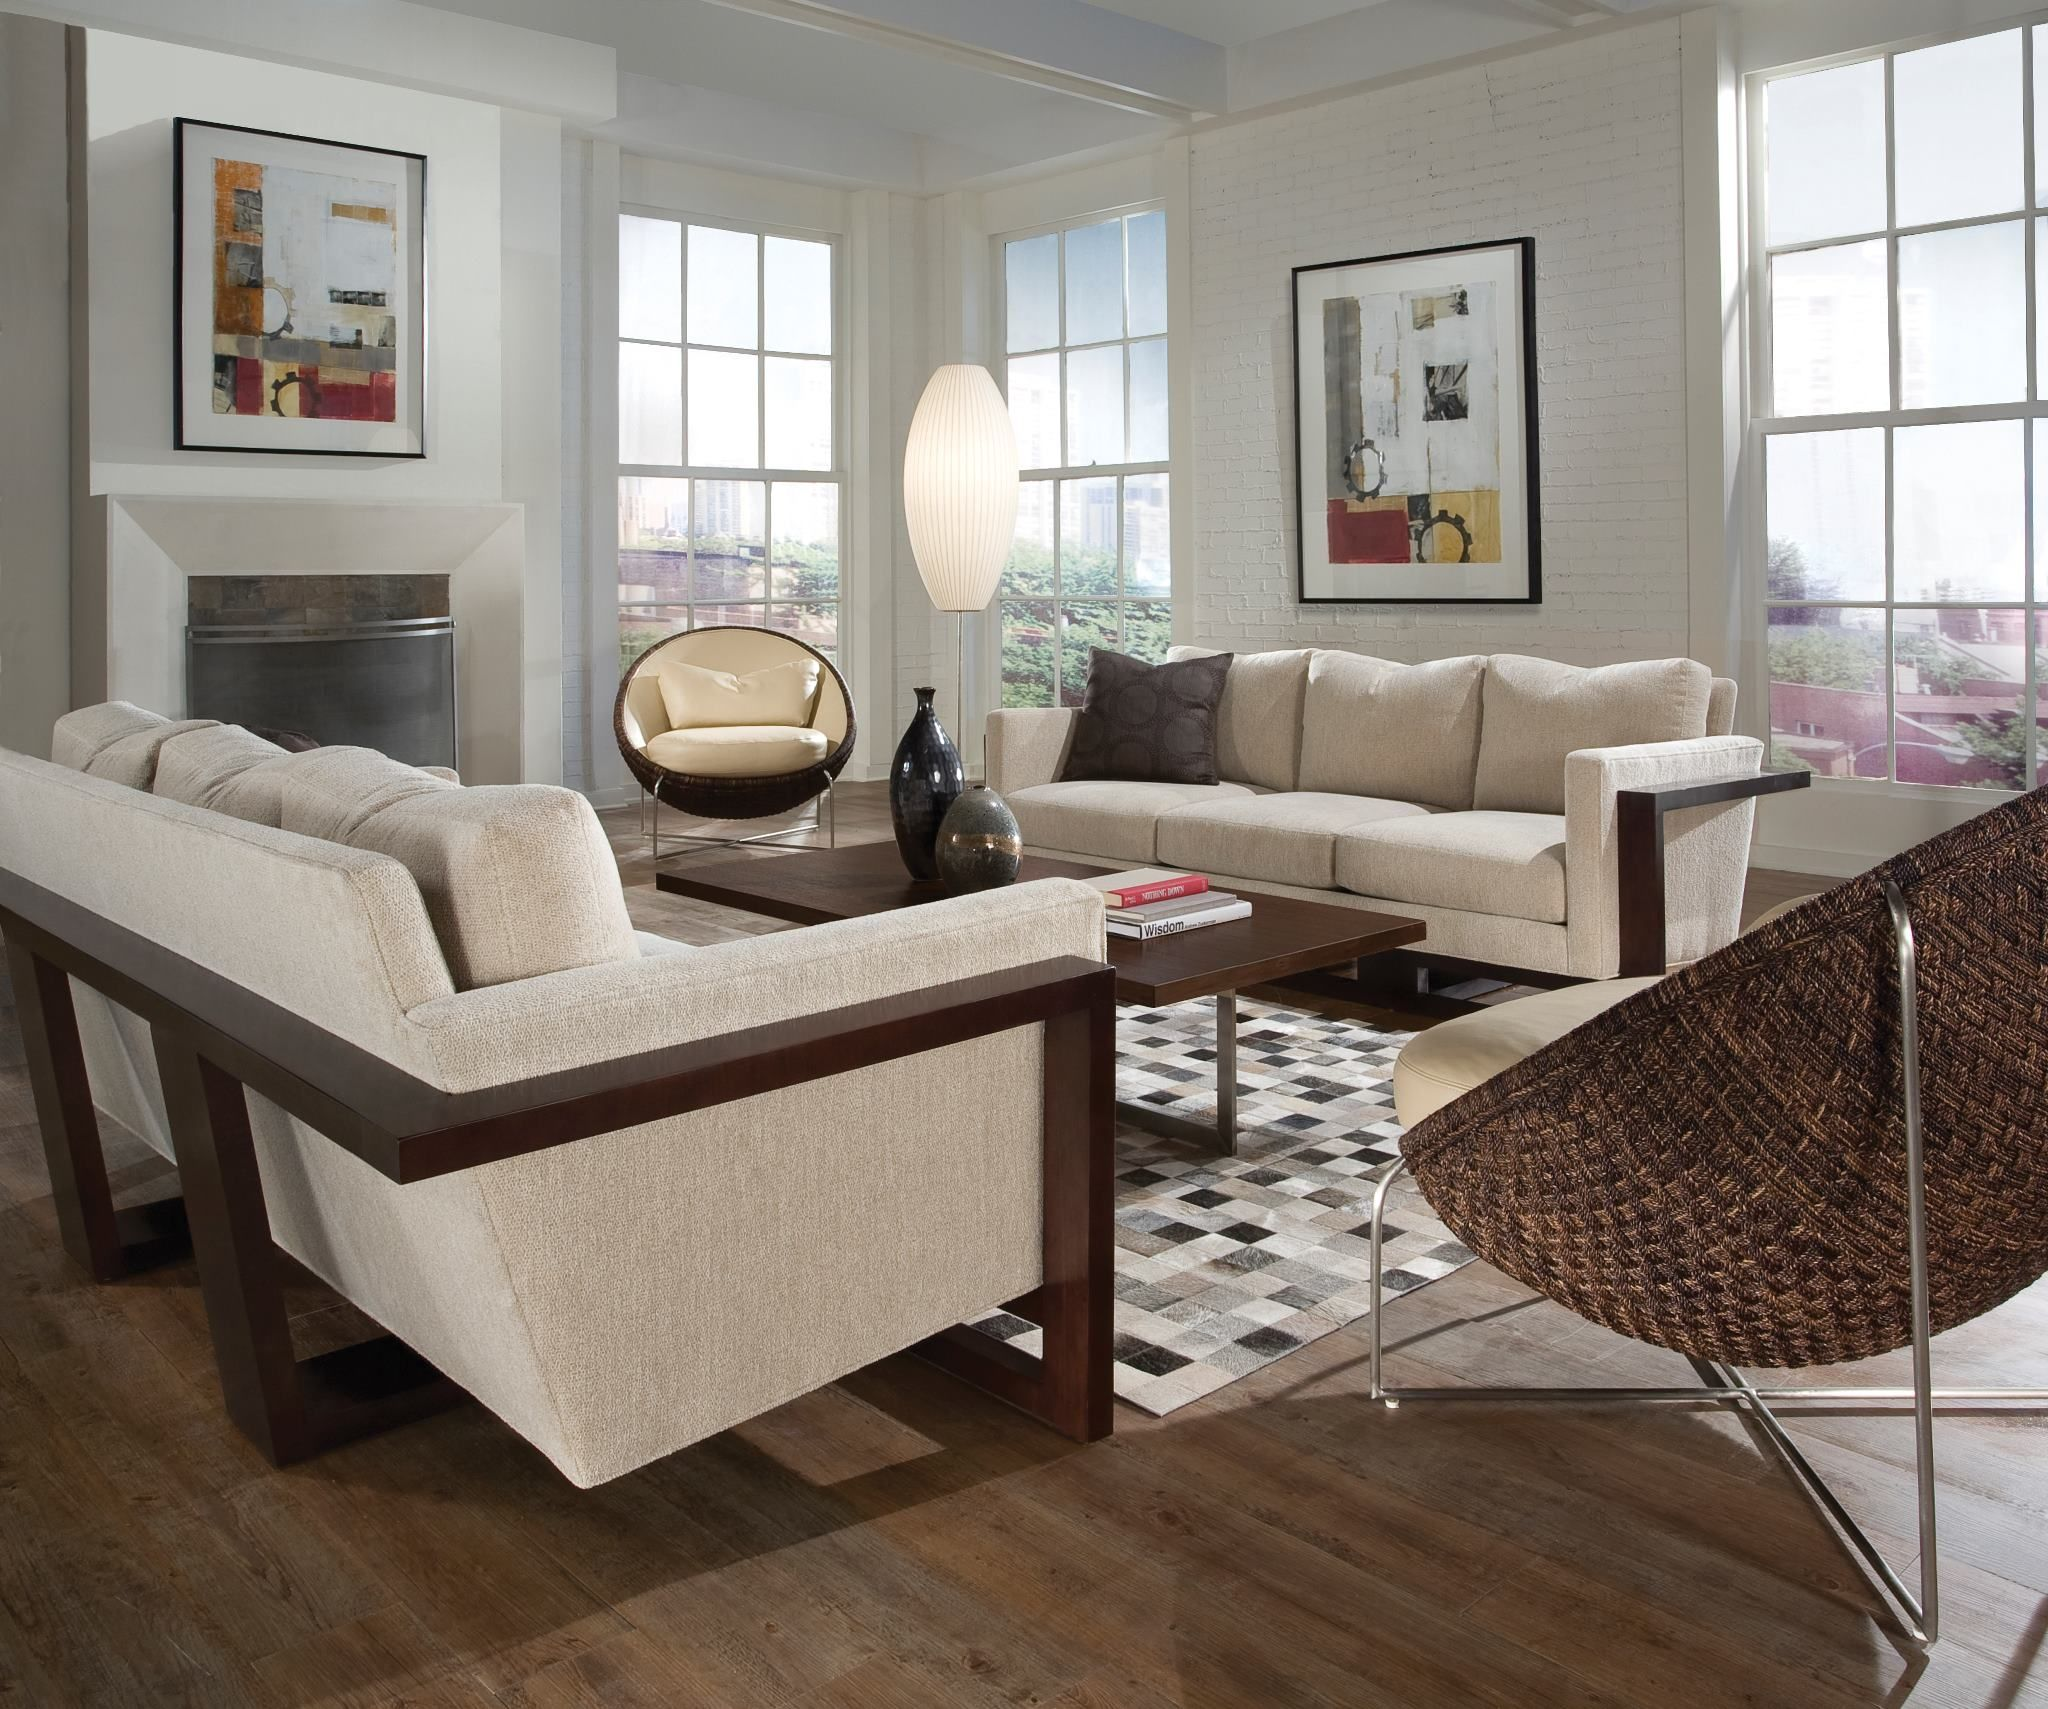 Living Room Interior Design with eXport Cocktail